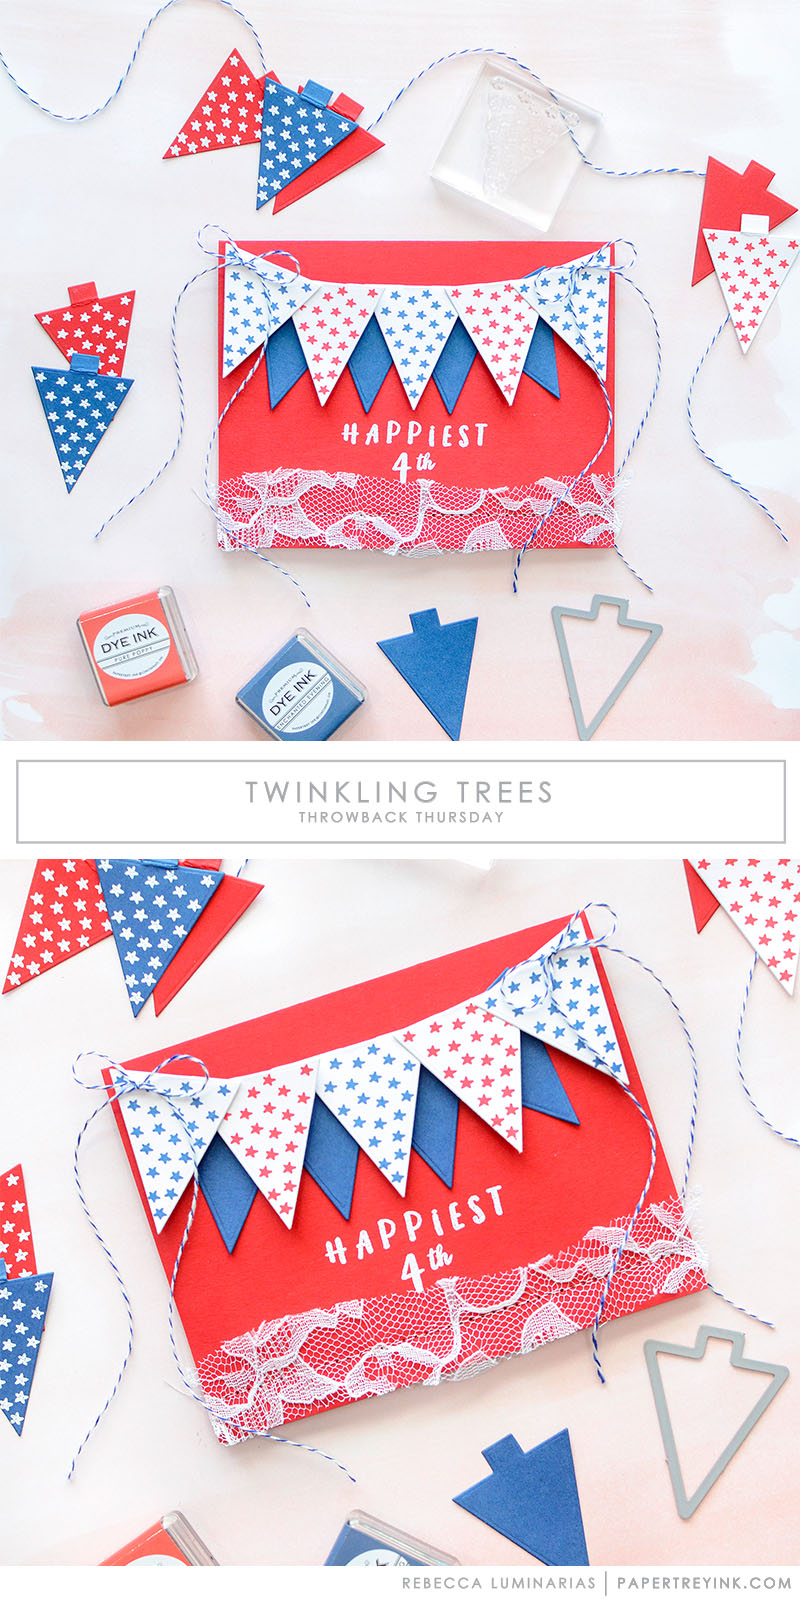 Throwback Thursday: Twinkling Trees